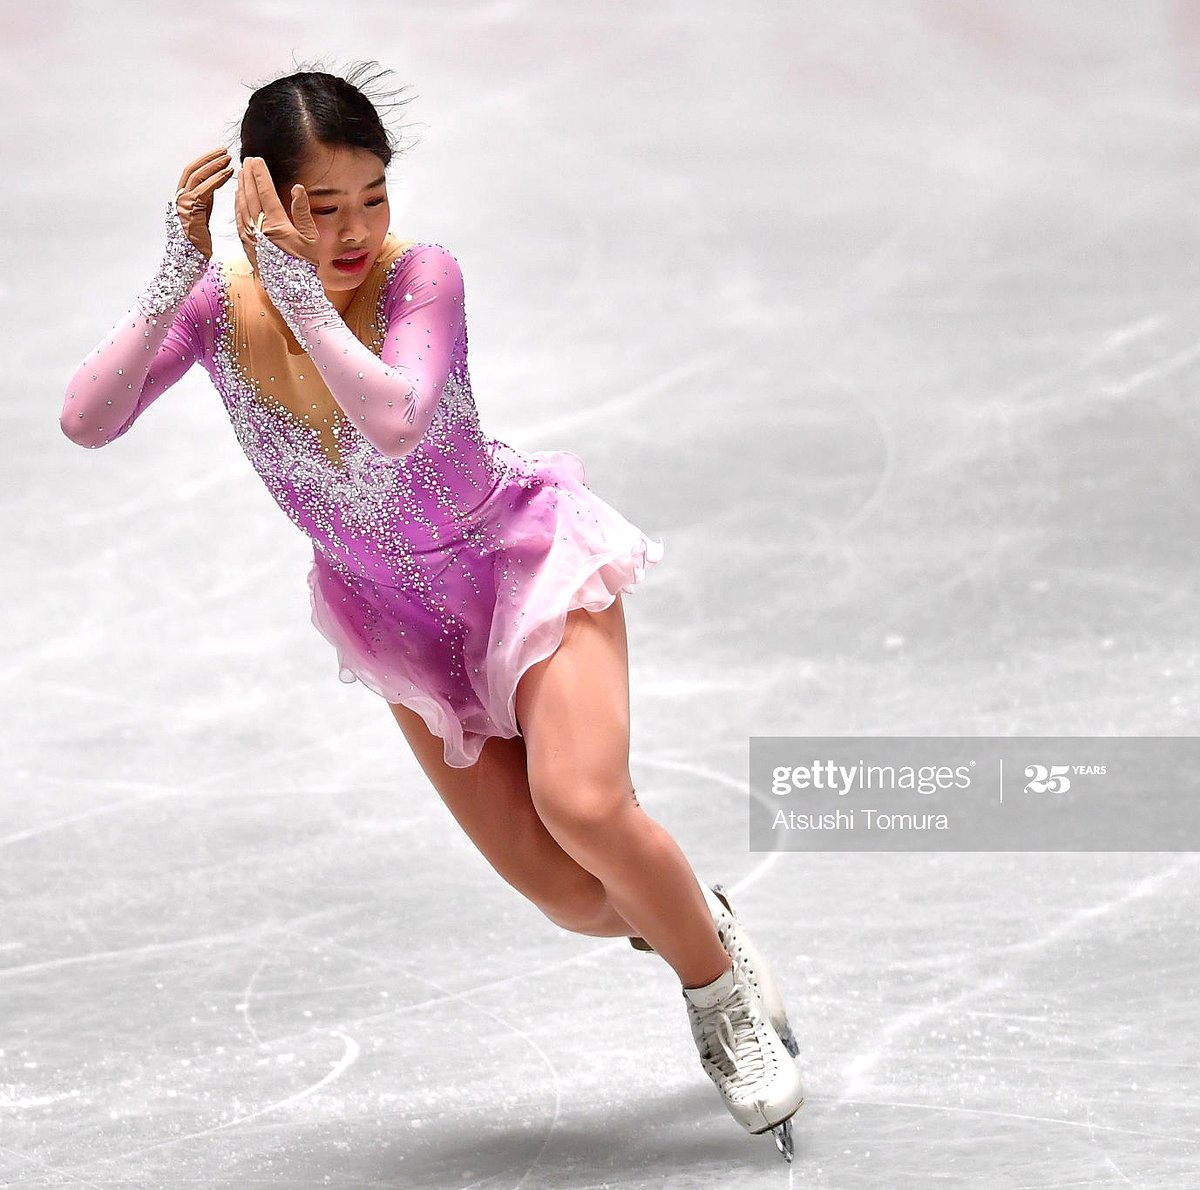 Happy Birthday  to Japan's  #YuhanaYokoi #横井ゆは菜! GS Fan Fest @  http:// bit.ly/YuhYok     | The 2020 #ChallengeCup  earned new PBs at #FinlandiaTrophy and #NHKTrophy  The 20-year-old from Nagoya enjoys growing vegetables   2019-20 FS #Phantom #FigureSkating <br>http://pic.twitter.com/Qihul1pU0J